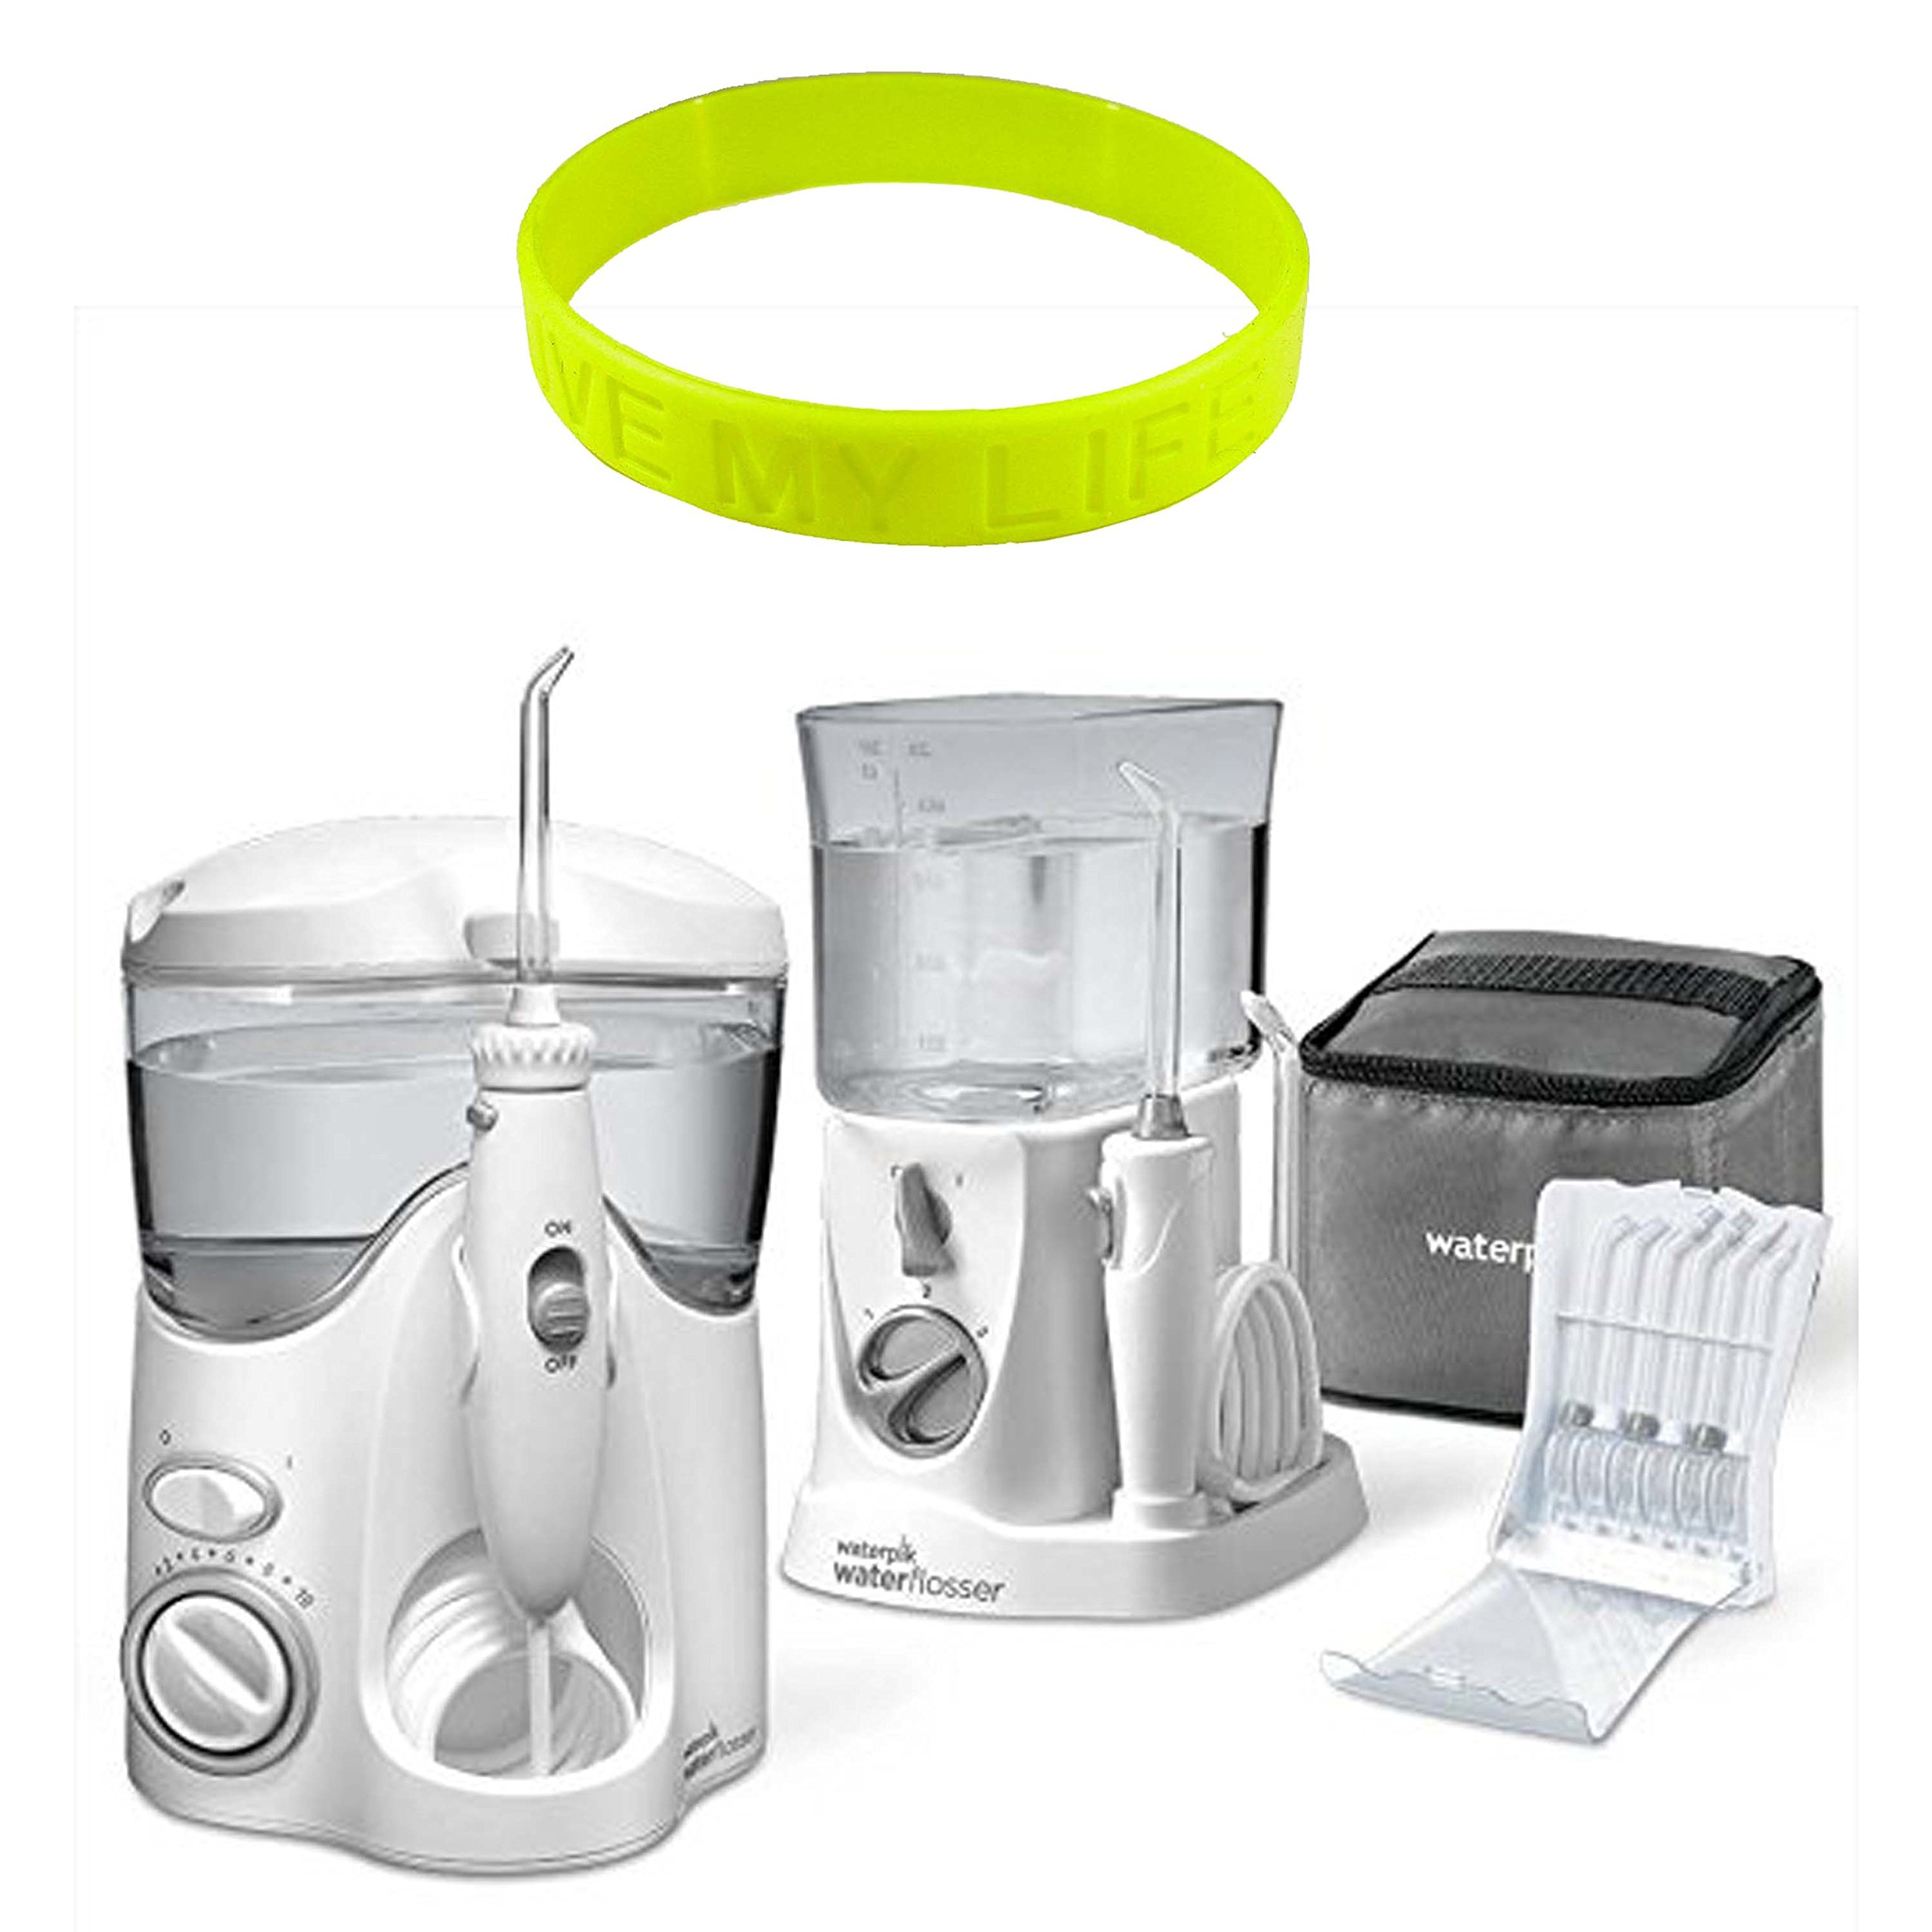 Waterpik Ultra and Nano Water Flosser Combo Pack Set with One Ultra Water Flosser, One Nano Flosser, One Premium Travel Case, One Tip Storage Case, Twelve Accessory Tips + Livemylife Wristband